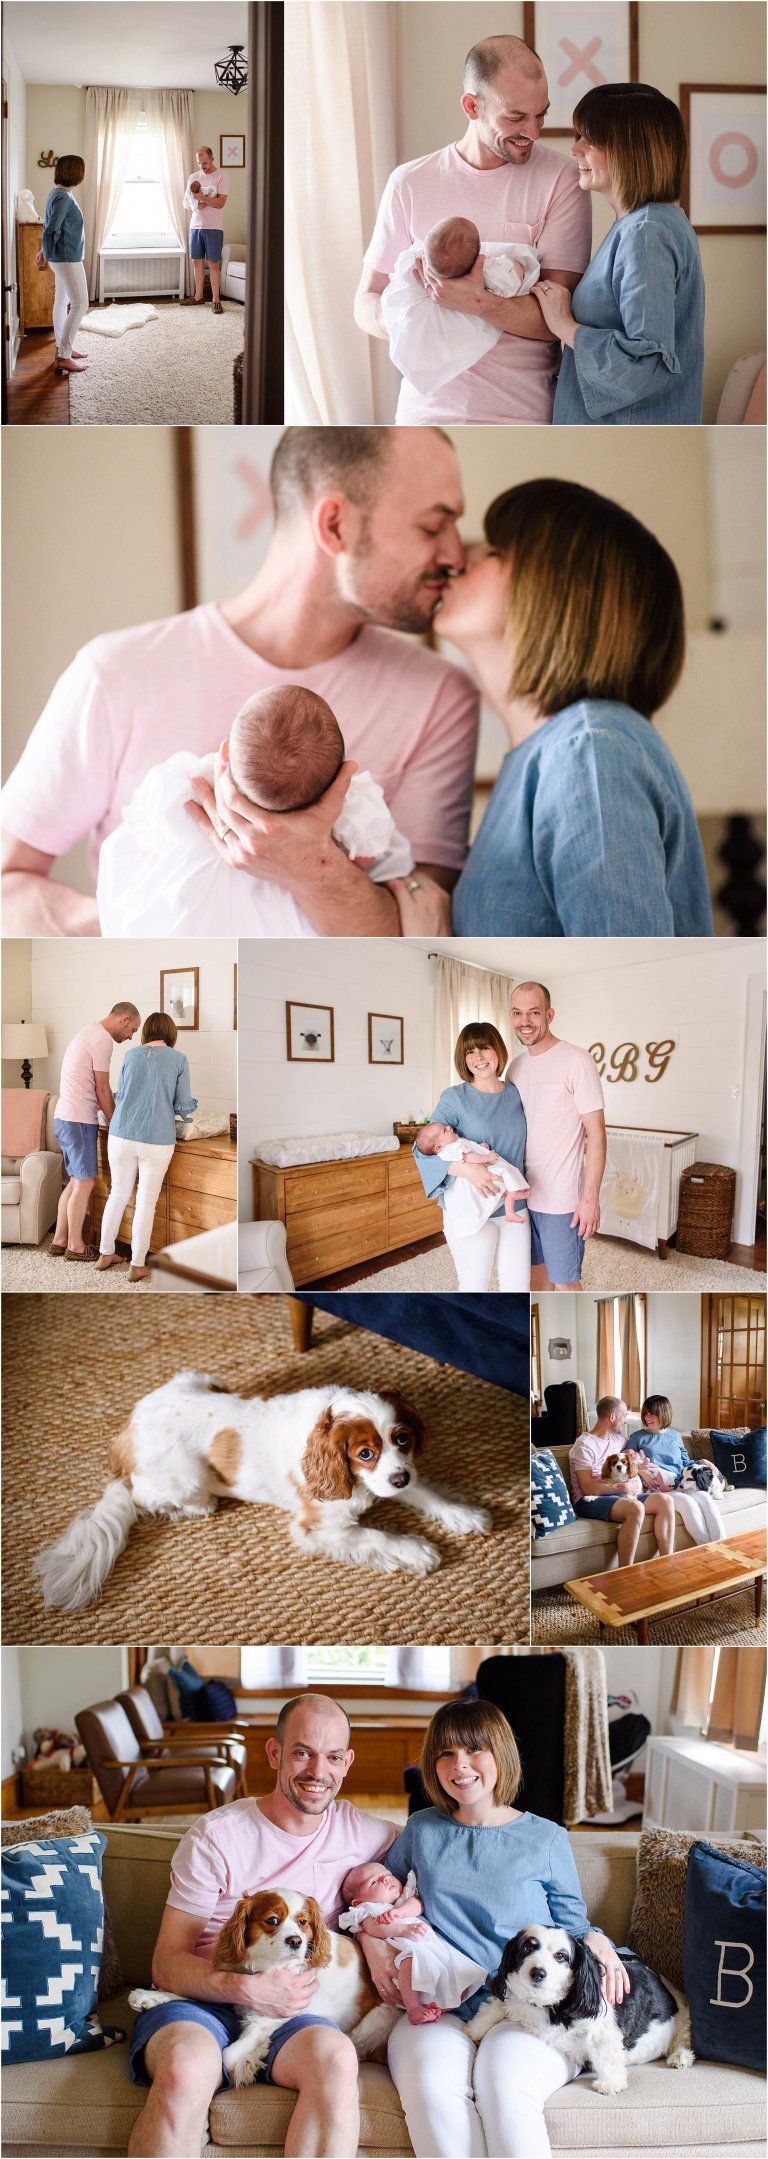 Father and Mother care for newborn baby girl in nursery by NEPA lifestyle session photographer Crystal Satriano